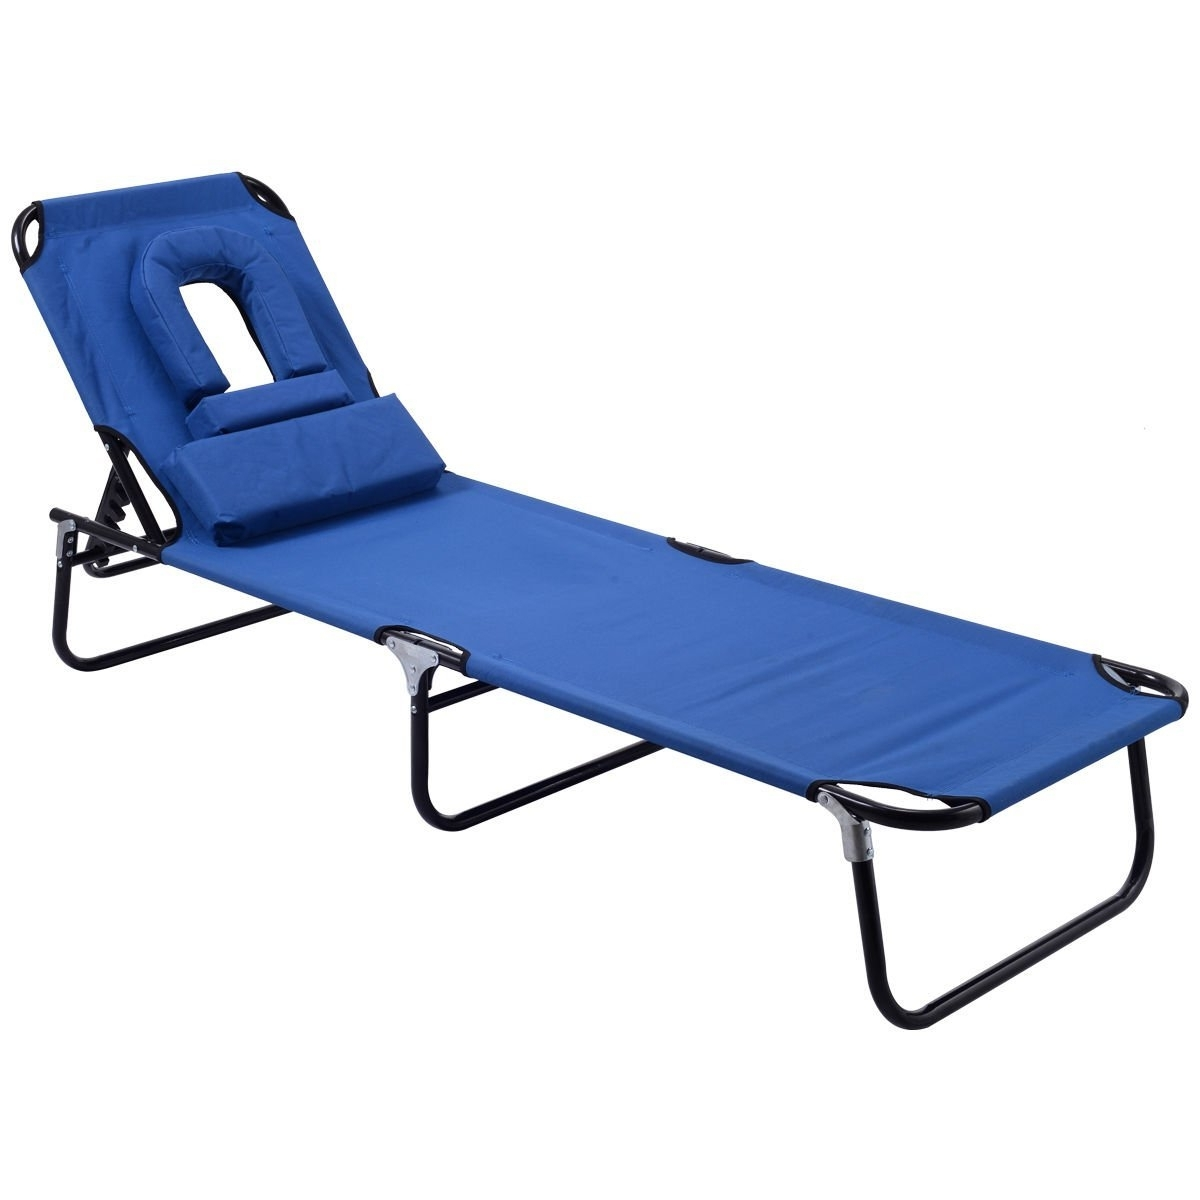 Newest Amazon: Goplus Folding Chaise Lounge Chair Bed Outdoor Patio With Regard To Chaise Lounge Sun Chairs (View 3 of 15)